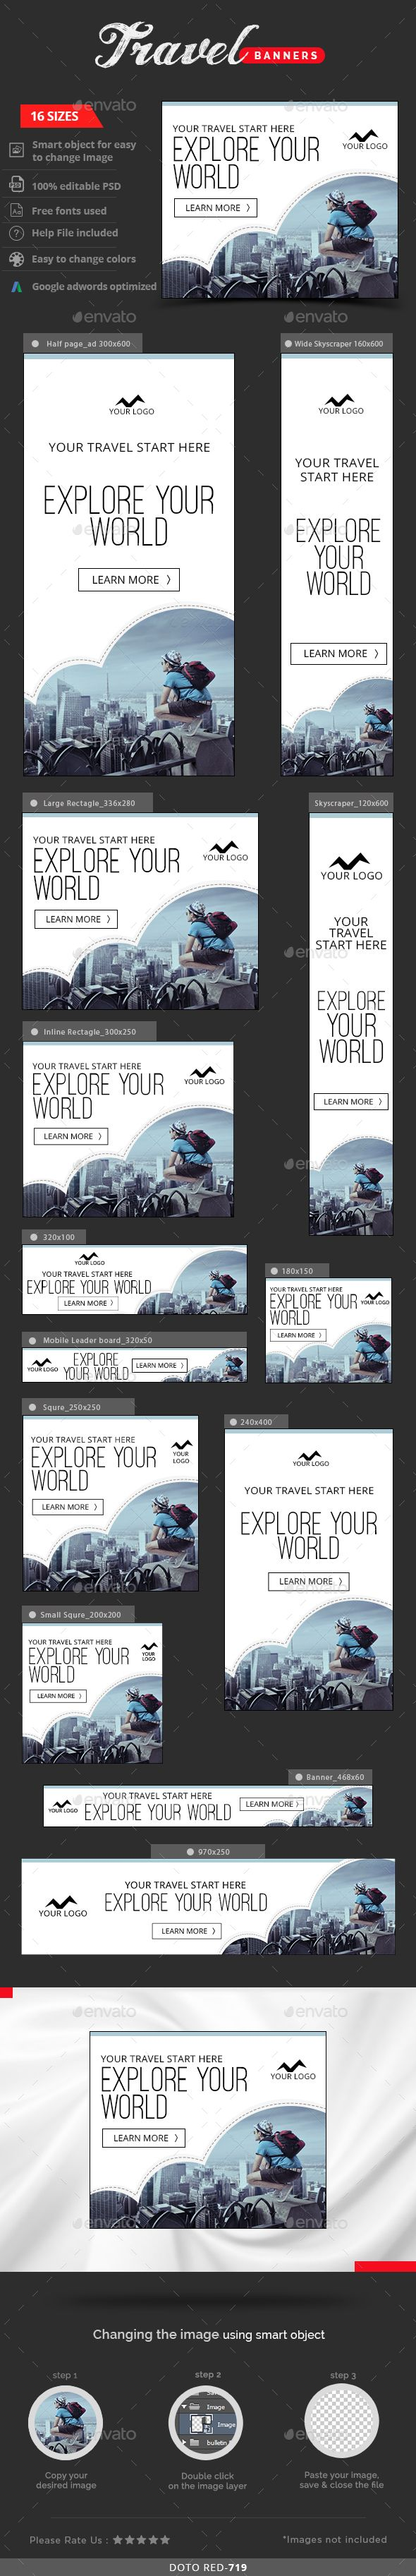 Travel Web Banners Template #design #ad Download: http://graphicriver.net/item/travel-banners/13112723?ref=ksioks